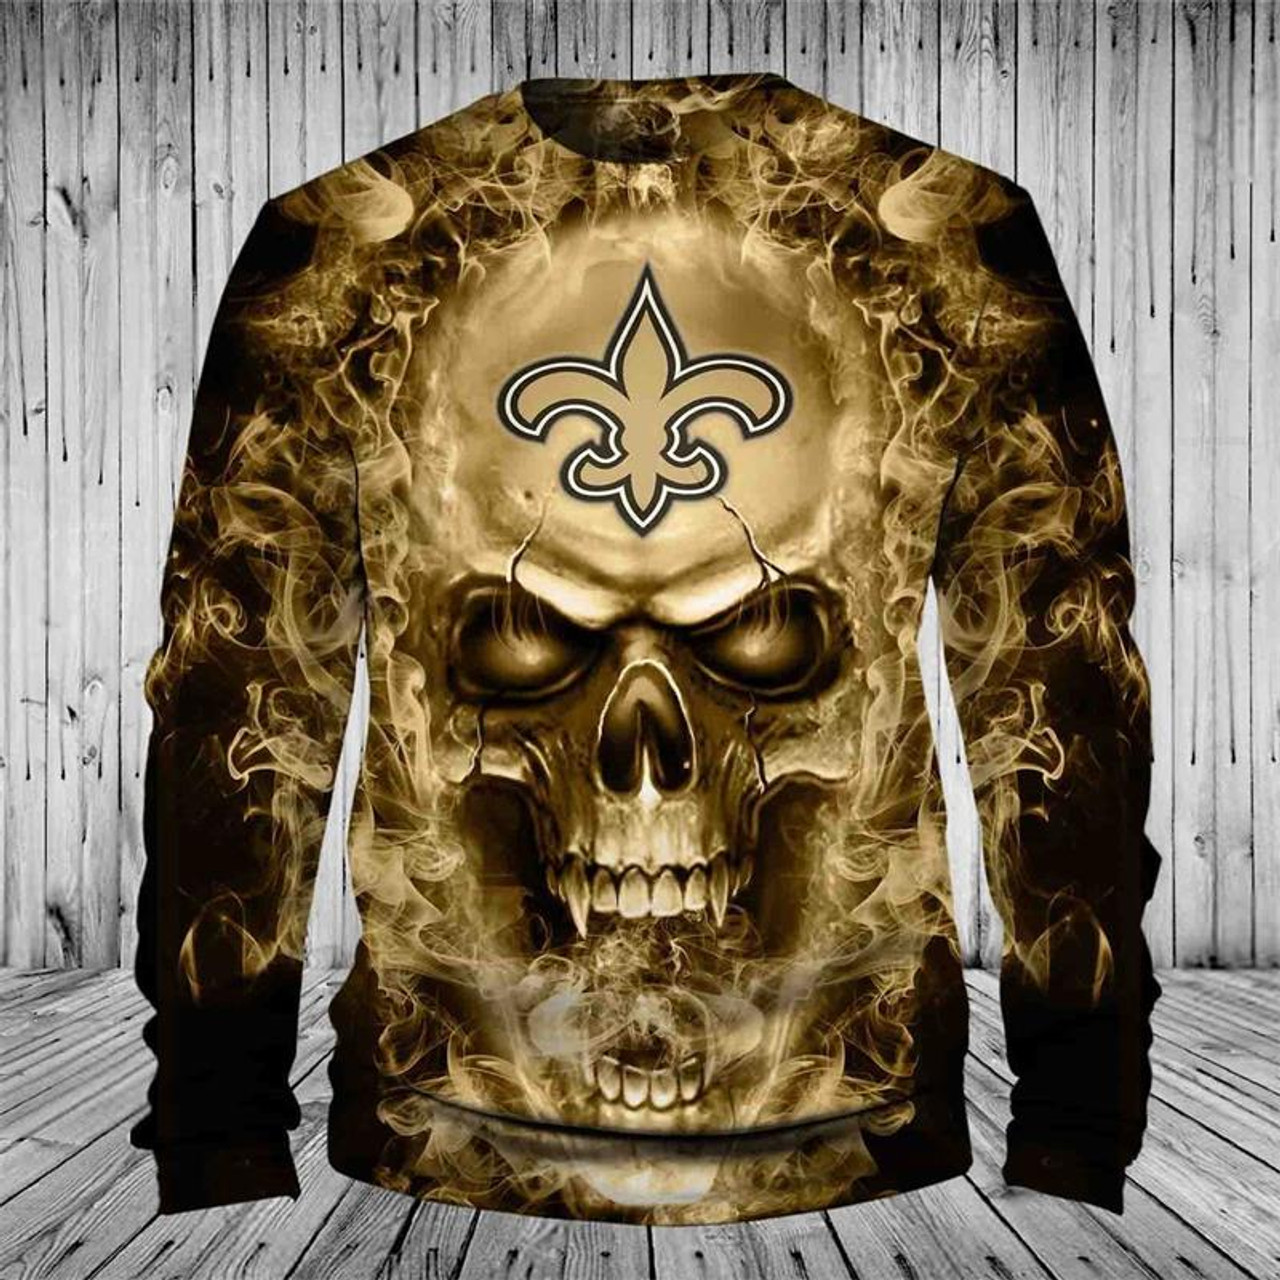 quality design 4ff32 afe1a **(OFFICIAL-N.F.L.NEW-ORLEANS-SAINTS-TEAM-LONG-SLEEVE-TEES/CUSTOM-3D-NEON-GOLD-FLAMING-SAINTS-SKULL,PREMIUM-3D-GRAPHIC-PRINTED-SAINTS-LOGOS/DOUBLE-SID...